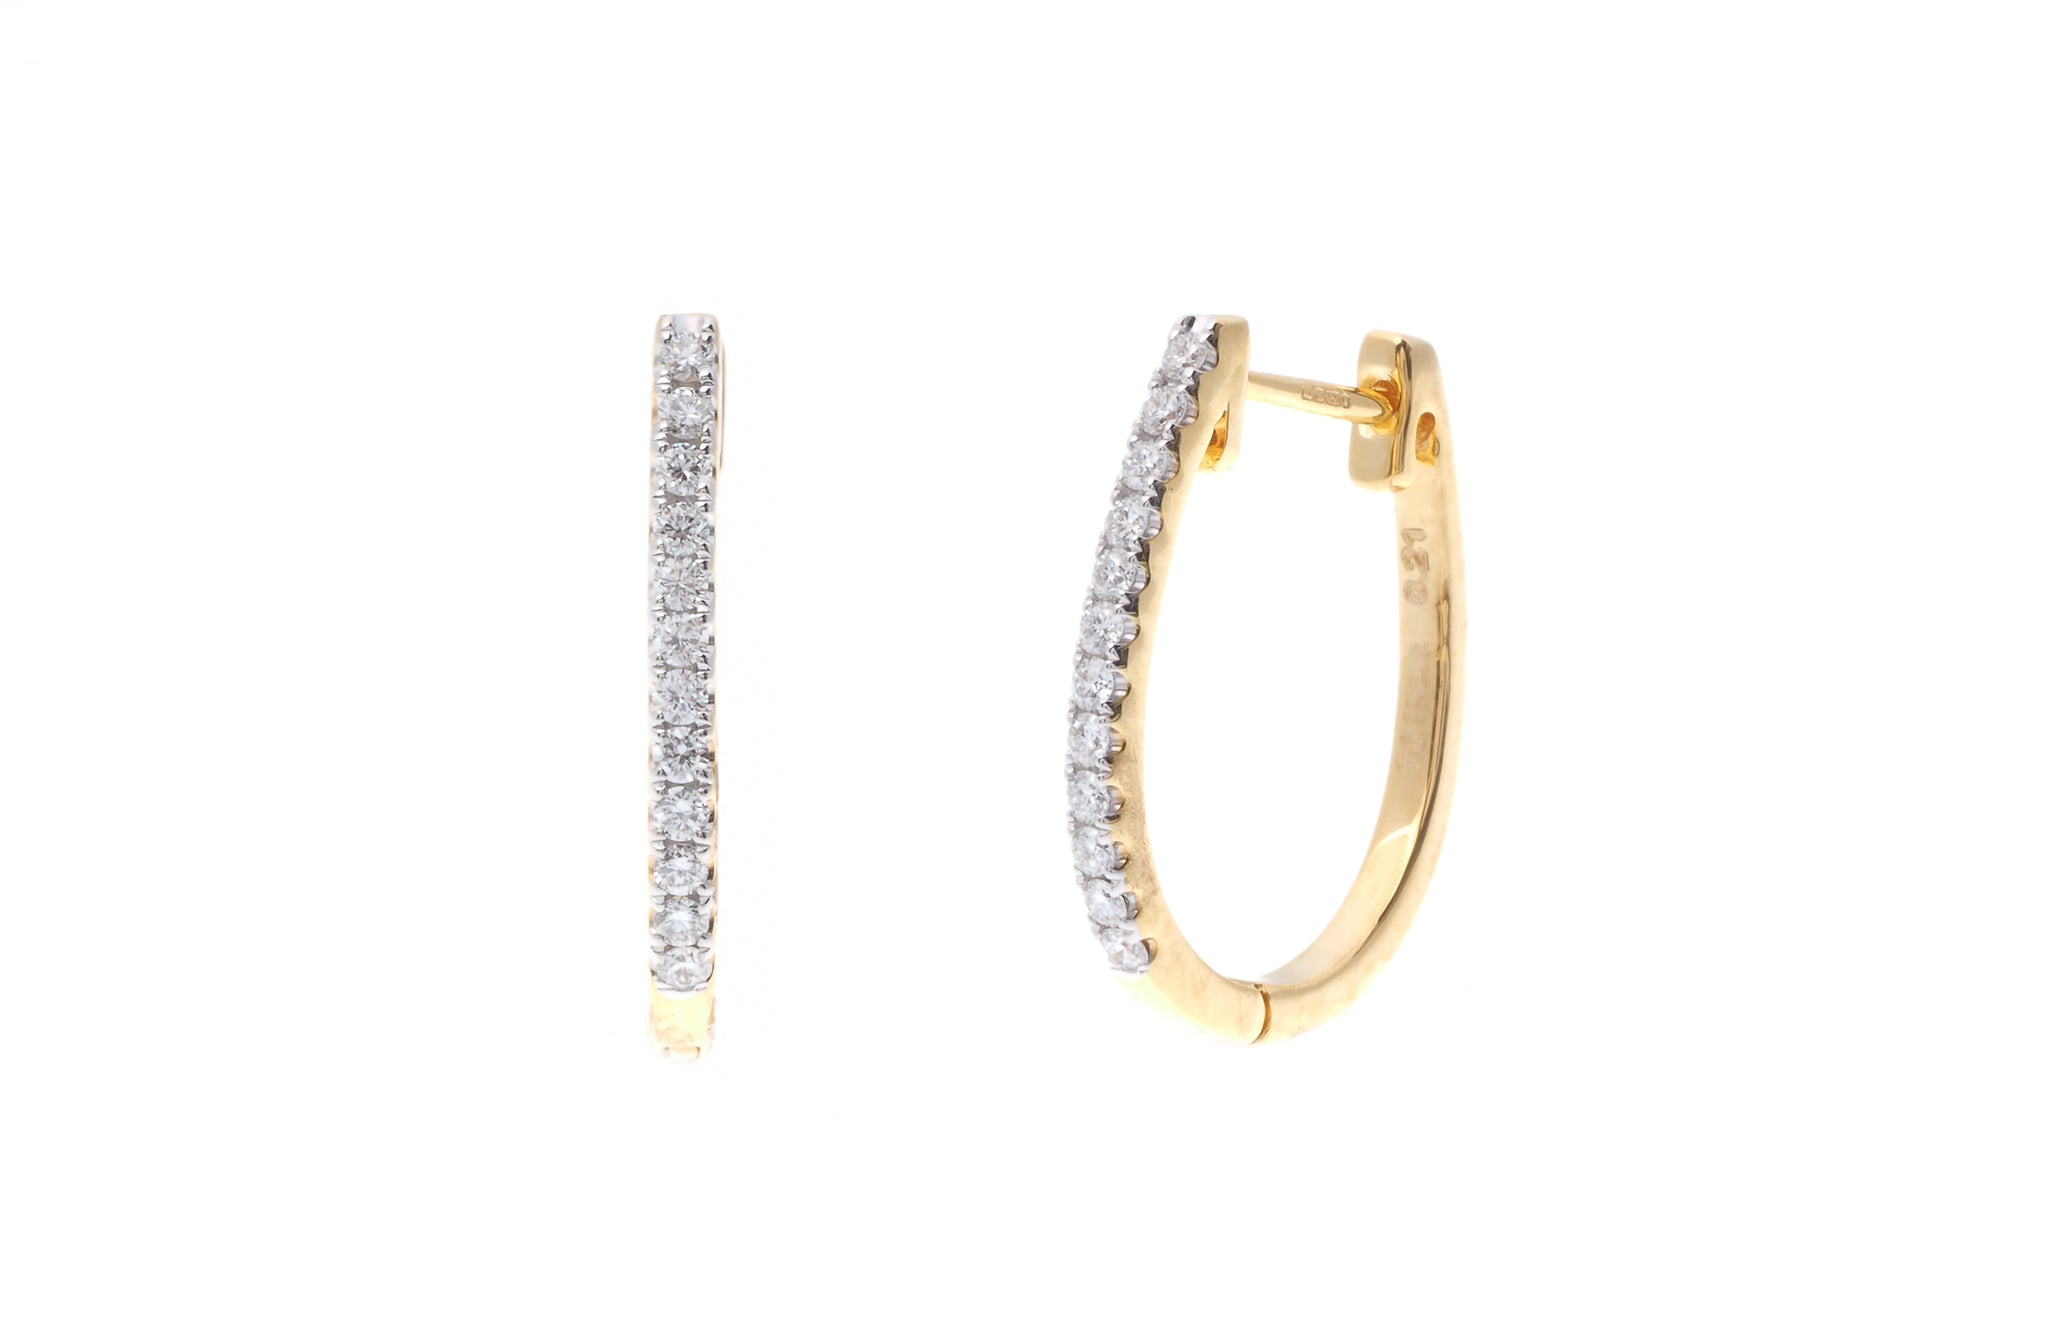 18ct Yellow Gold 0.21ct Diamond Hoop Earrings (MCS2777)